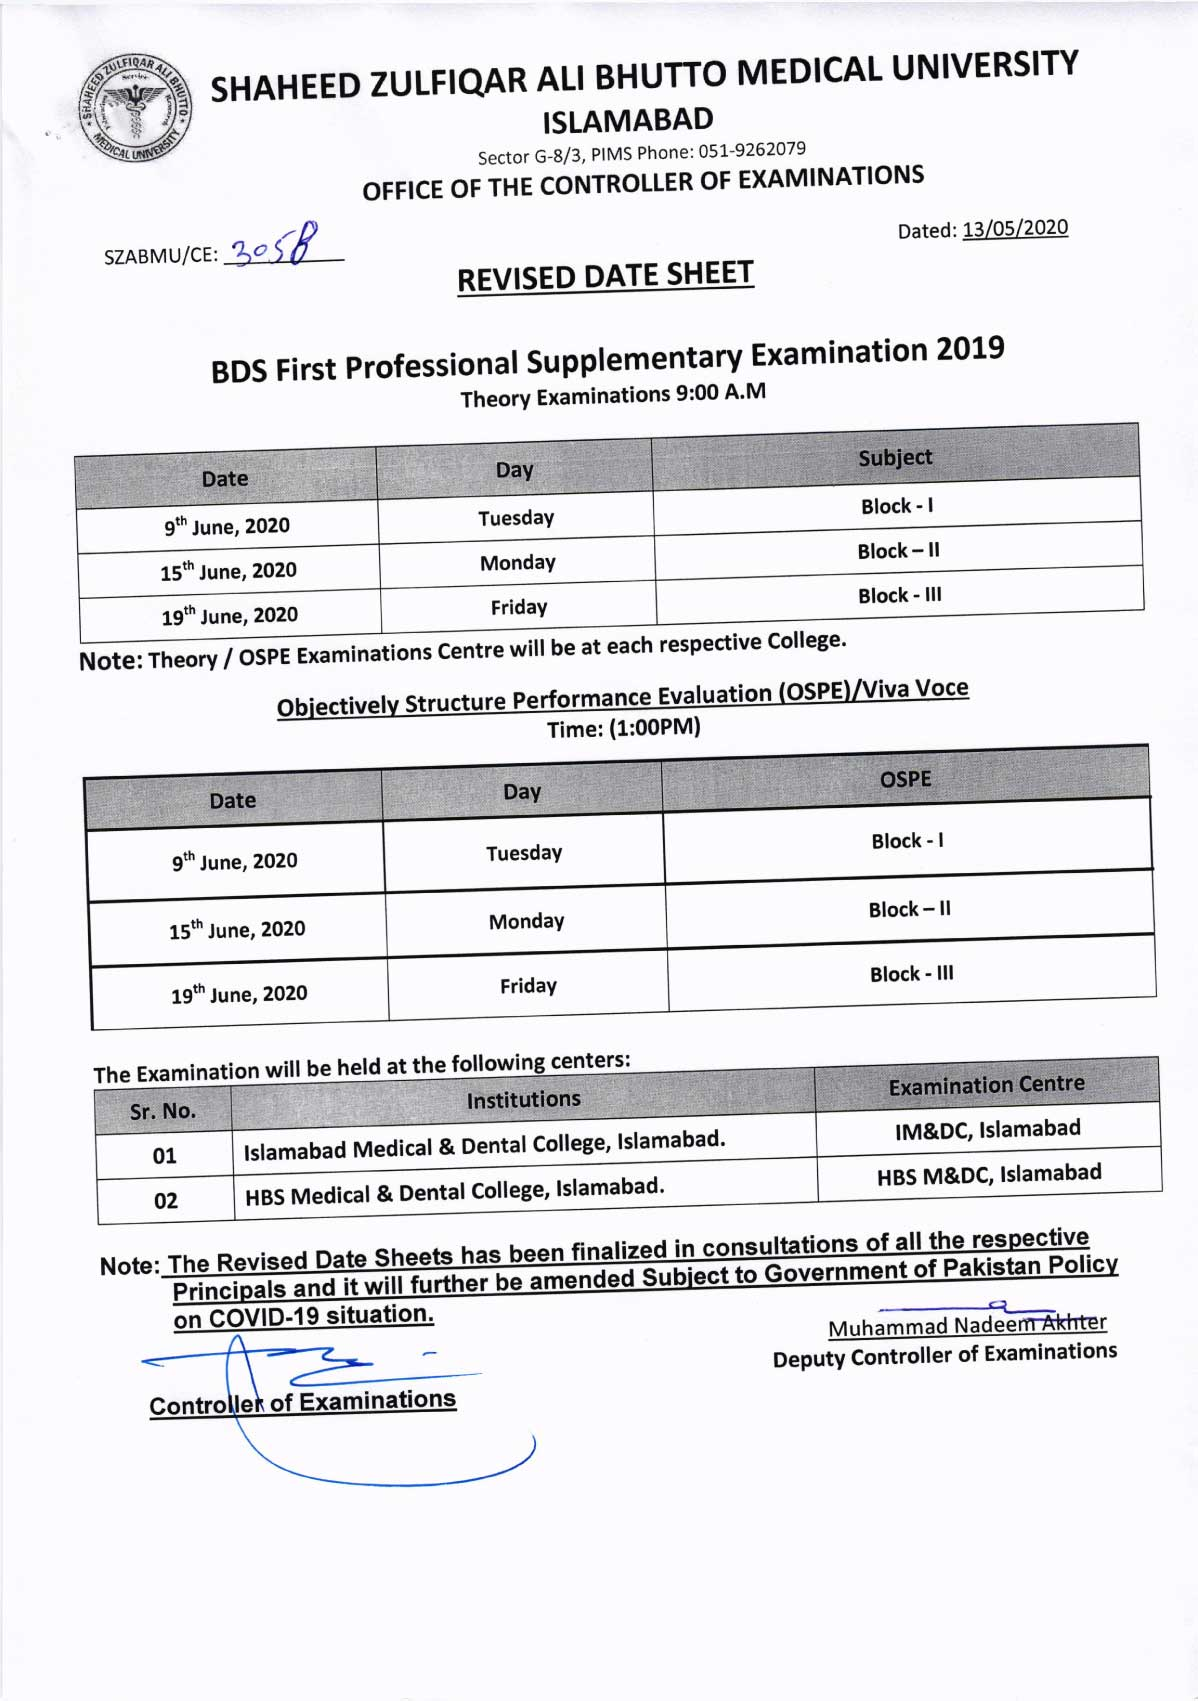 Revised - Date Sheet of BDS All Professionals Supplementary Examination 2020